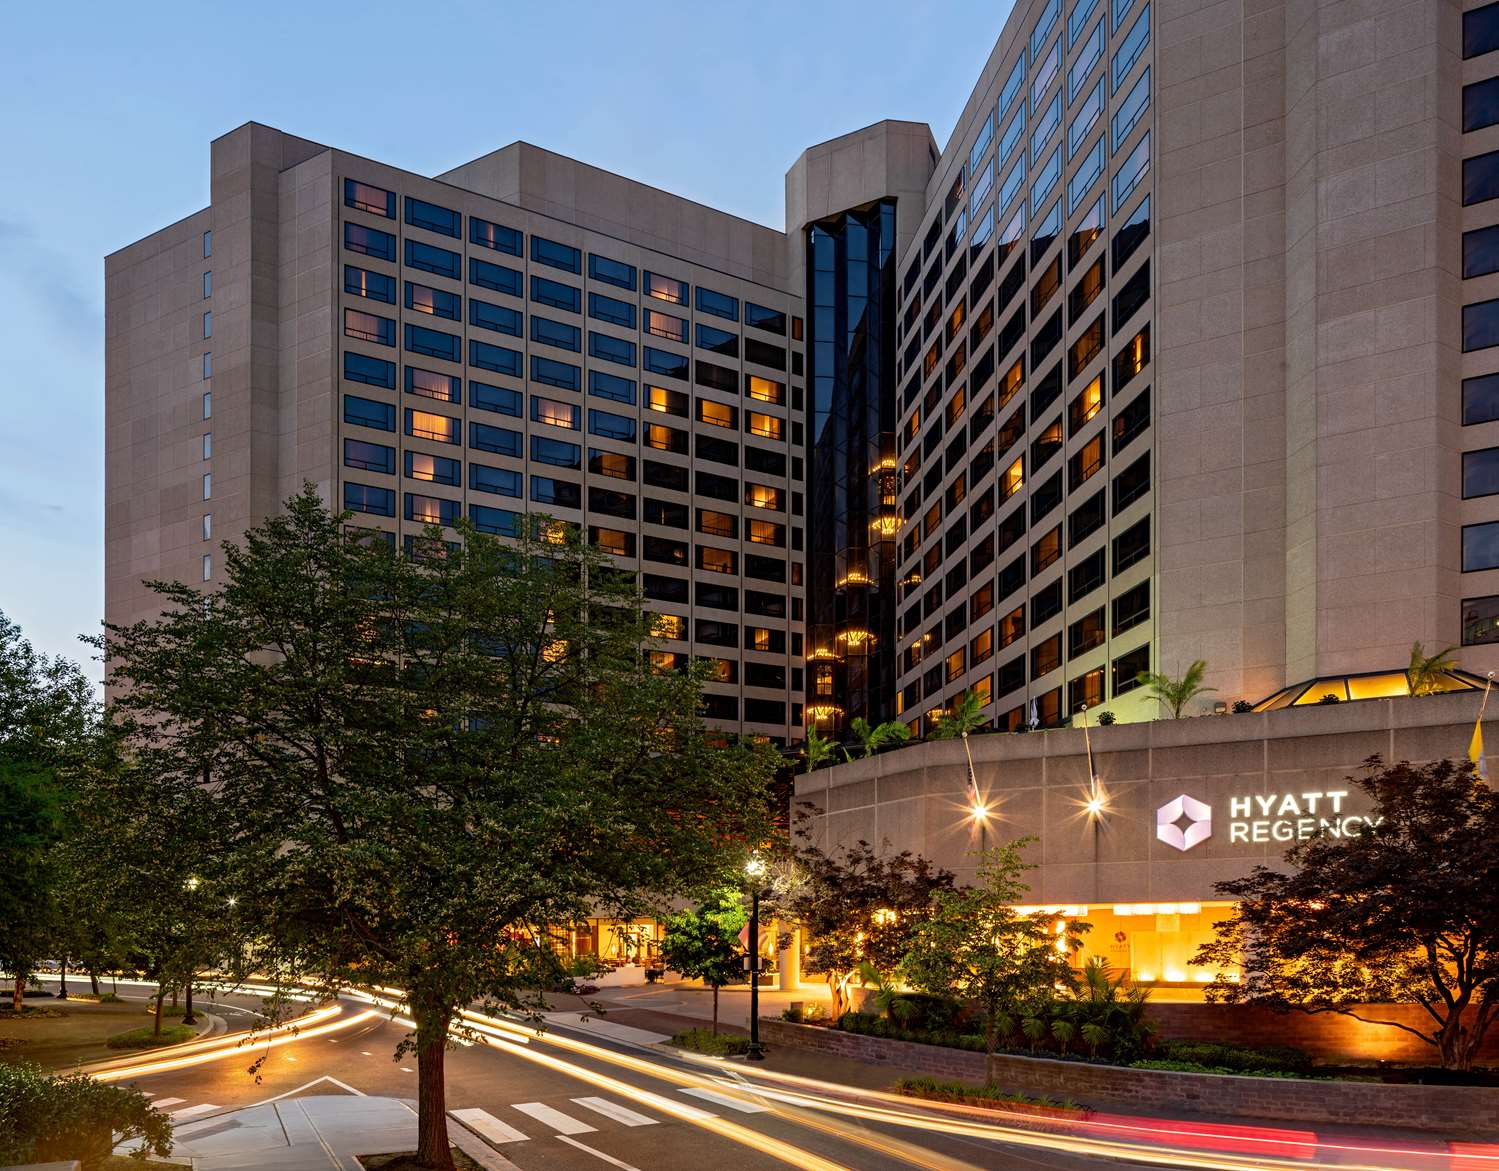 Hyatt Regency Hotel Crystal City Arlington